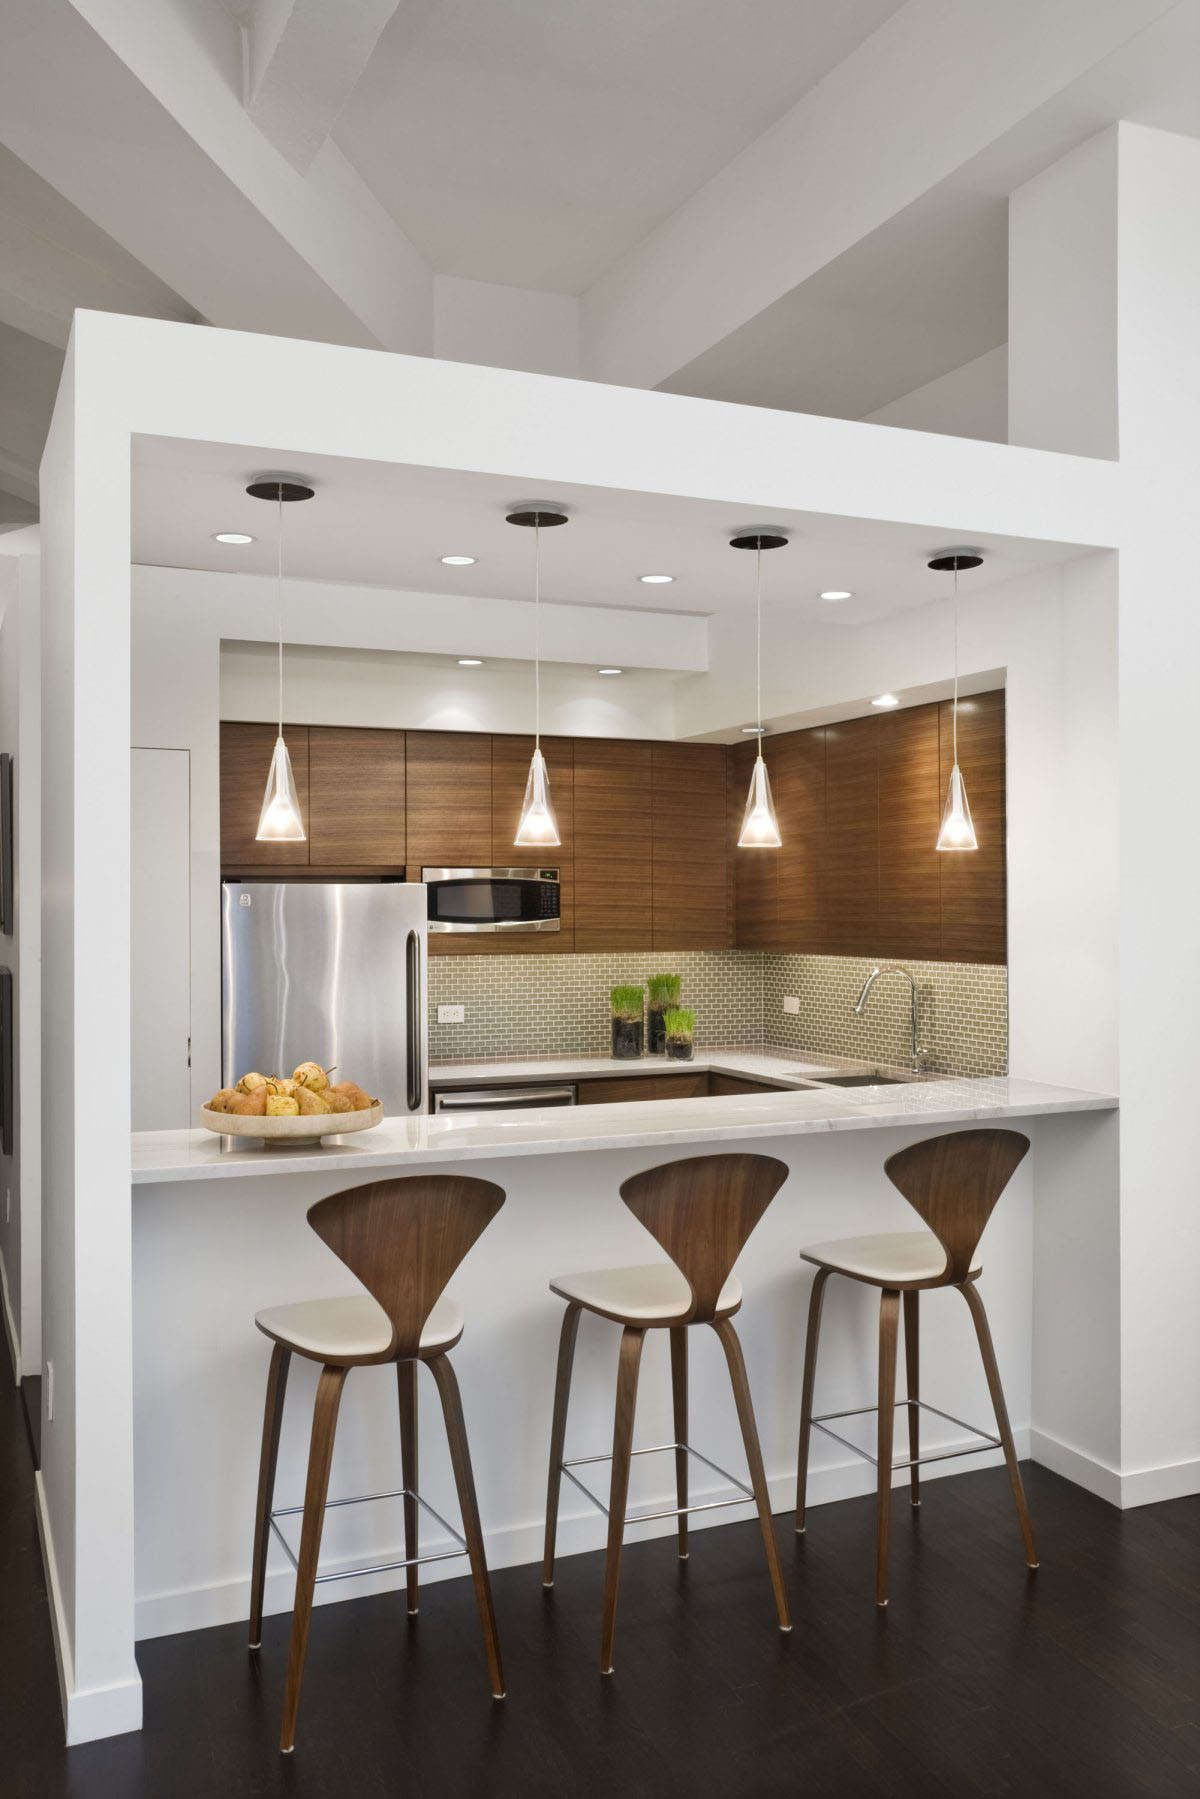 Fabulous Small Apartment Kitchen With Small White Island And